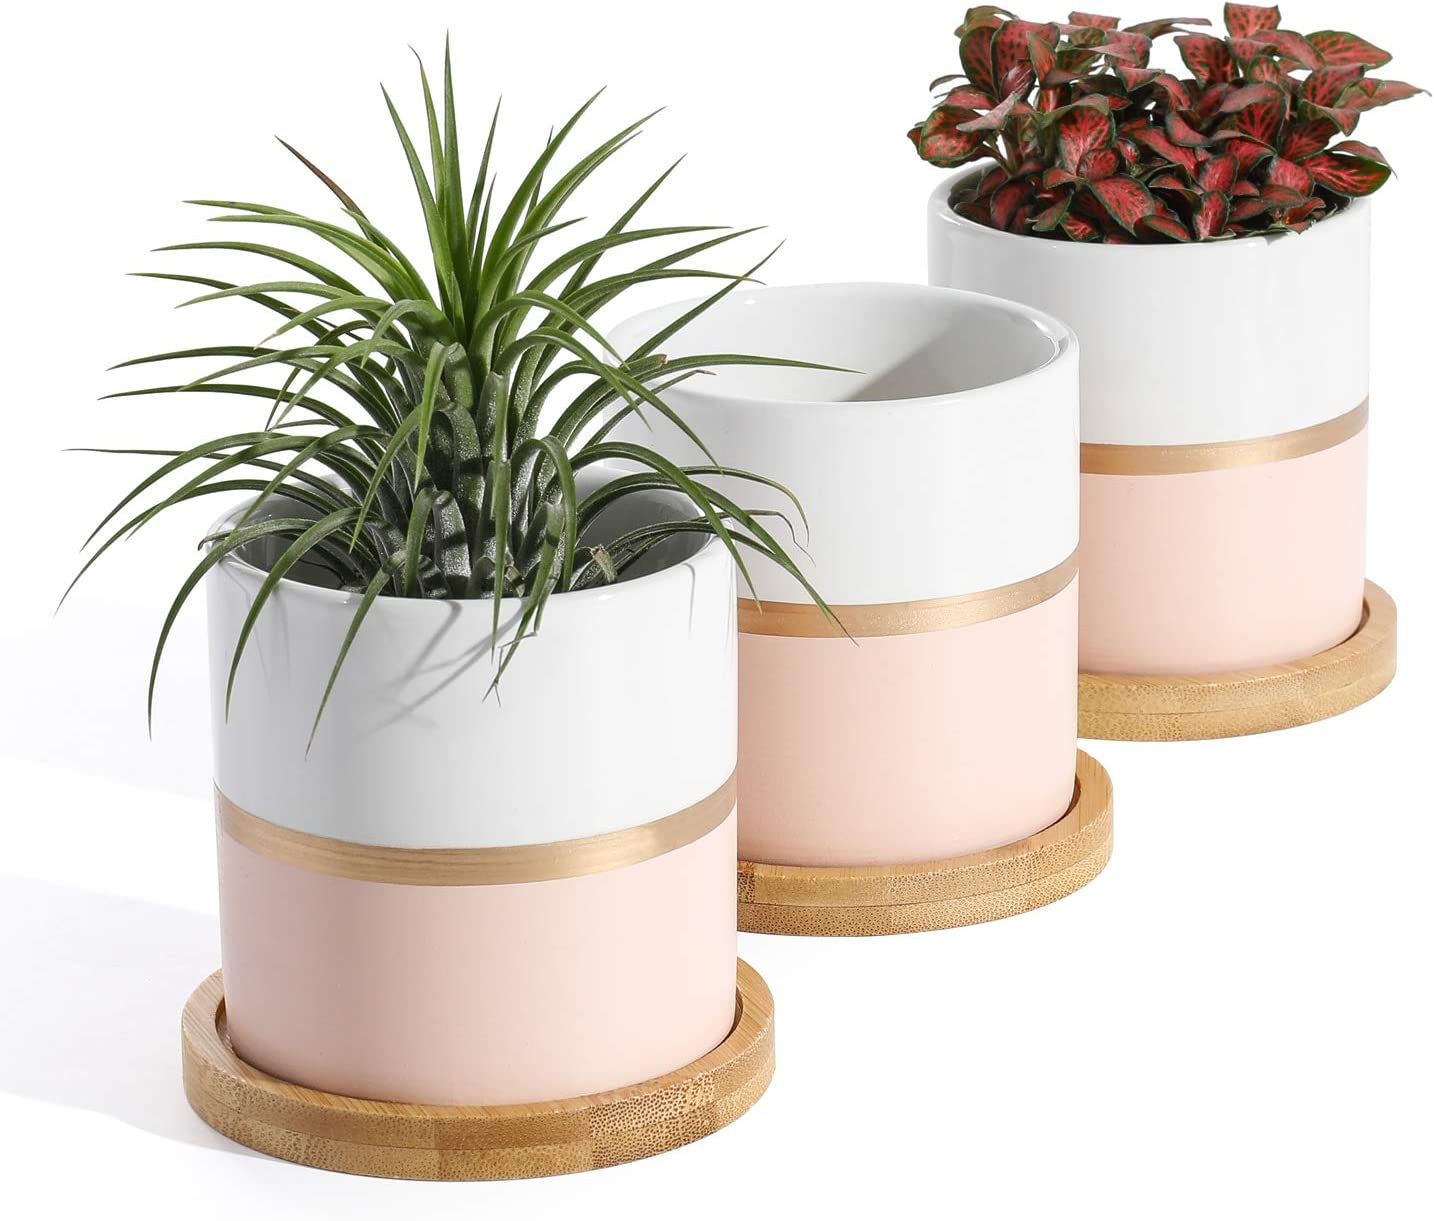 POTEY 055404 Succulent Pots Set - 3.1 Inches Ceramic Small Planters with Bamboo Saucer for Plants Succulent Cactus House Office Decor(White Pink, 3 PCS, Plant NOT Included)